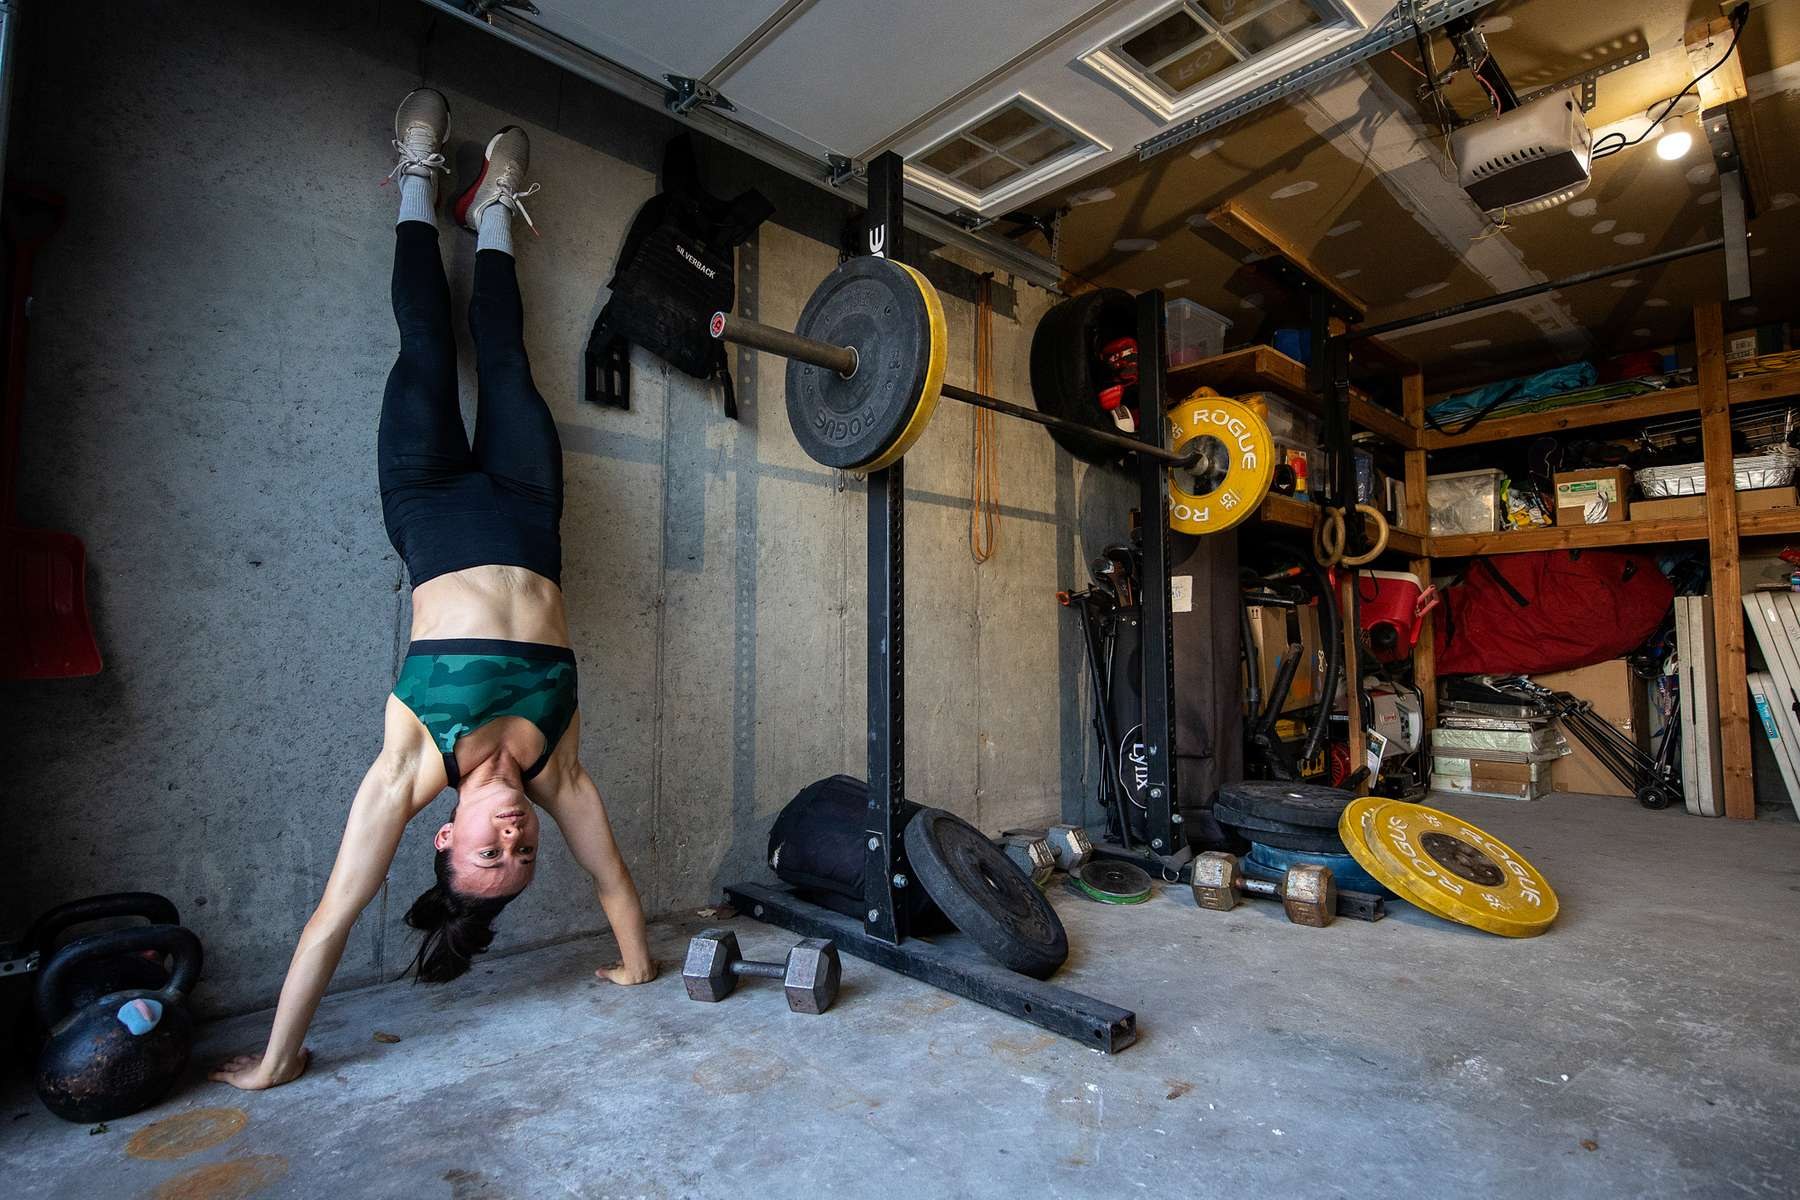 Nicole Guerrero exercises in her garage with her virtual Fitness Trainer and Husband Dennis Guerrero on November 21st, 2020 in Long Beach, New York. In March of 2014, Dennis Guerrero and his business partner opened a gym on Long Island. The pair shared a passion for fitness, a dream of creating a local community of like-minded people and a willingness to take a risk. Over the next six years, hundreds of members experienced and embraced a unique environment that fostered a palpable energy, helping athletes of all ages and abilities reach their potential.  The gym became a place to share achievements, work through losses and overcome illness. But like so many other businesses, it seemingly had no way of overcoming the financial impact and ongoing uncertainty of a global pandemic. With the arrival of Covid-19, the gym shut its doors back in March, with no idea when it would reopen. The owners, though, were far from done. They lent out every piece of equipment they owned to the gym's members, continued to pay their staff and worked to set up outdoor classes in hopes of keeping their membership active and healthy. As the shutdown stretched on, it became clear that the physical gym was closed for good.  They have since reinvented themselves and are now called Life Outside the Box.  Their business model has changed drastically, and all their workouts have gone virtual.  The workouts are conducted by a small group of fitness trainers led by Guerrero.  The members pay a monthly fee and can take live Zoom fitness classes.  They are coached by the virtual trainers in real time.  More and more people have reconstructed their garages, spare rooms, backyards, and basements into home gyms since the COVID-19 pandemic hit the United States.